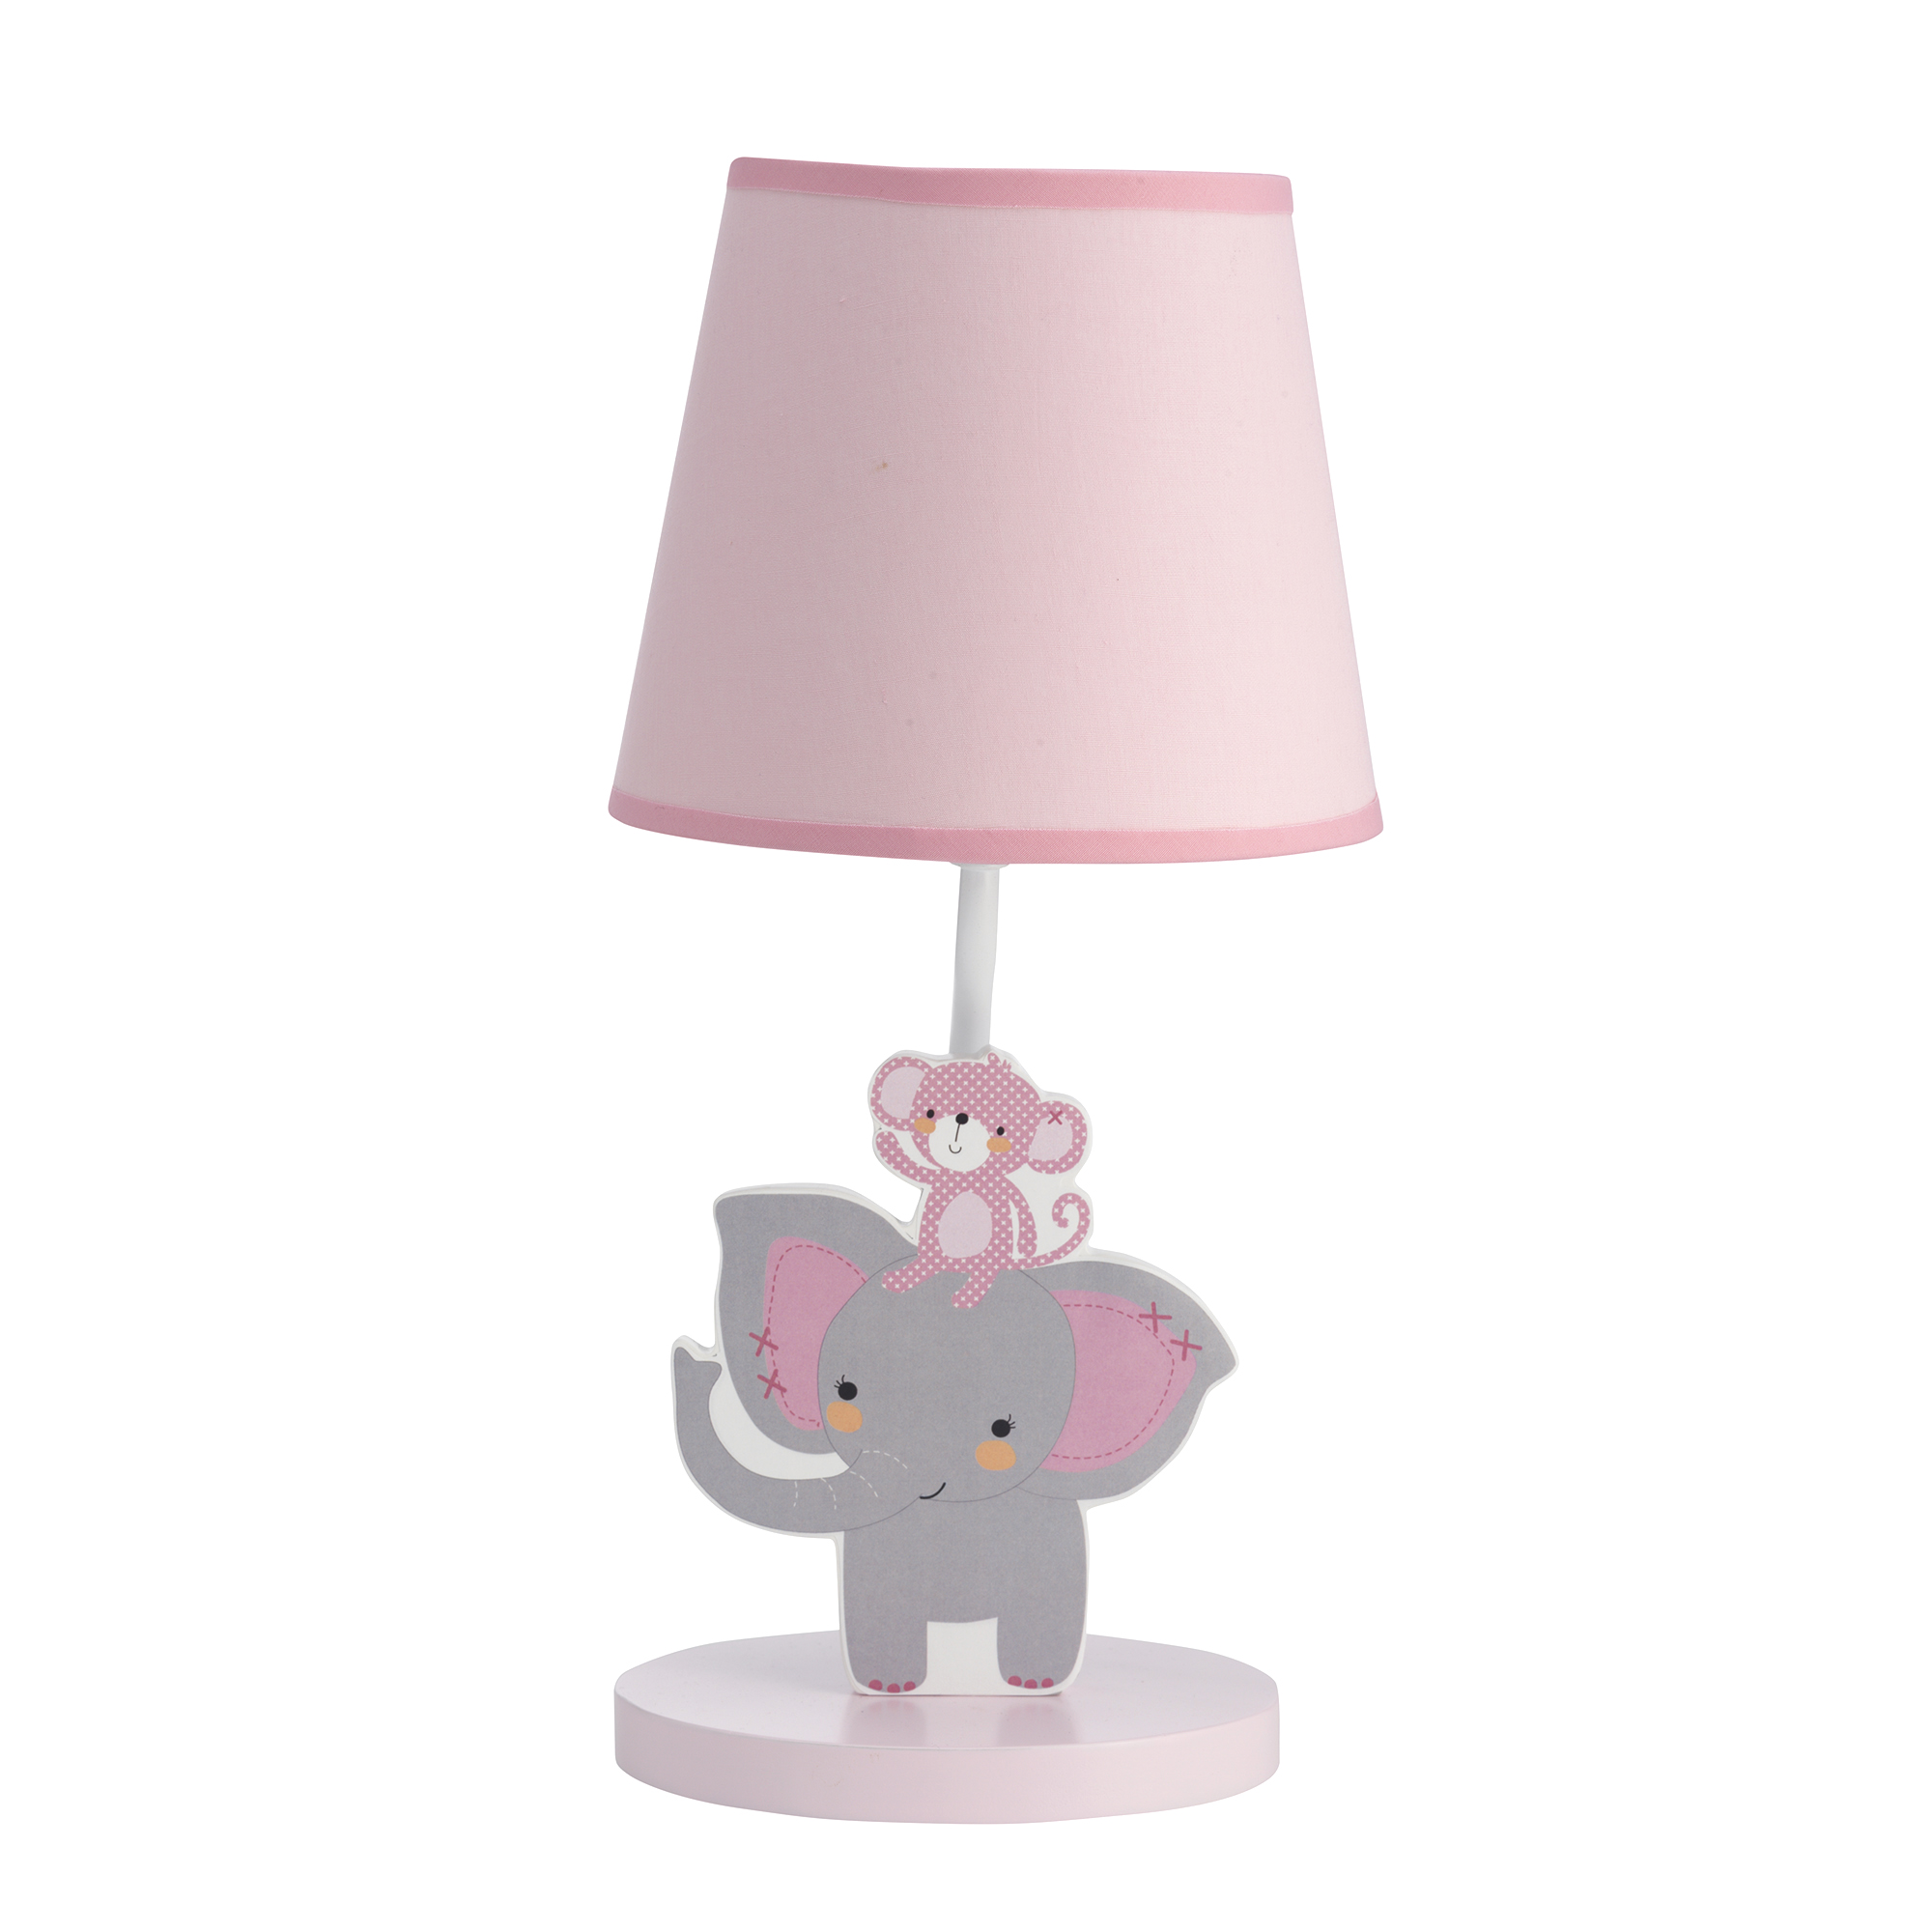 Animal Lamp For Nursery Details About Bedtime Originals Twinkle Toes Lamp With Shade Bulb Pink Gray Animals